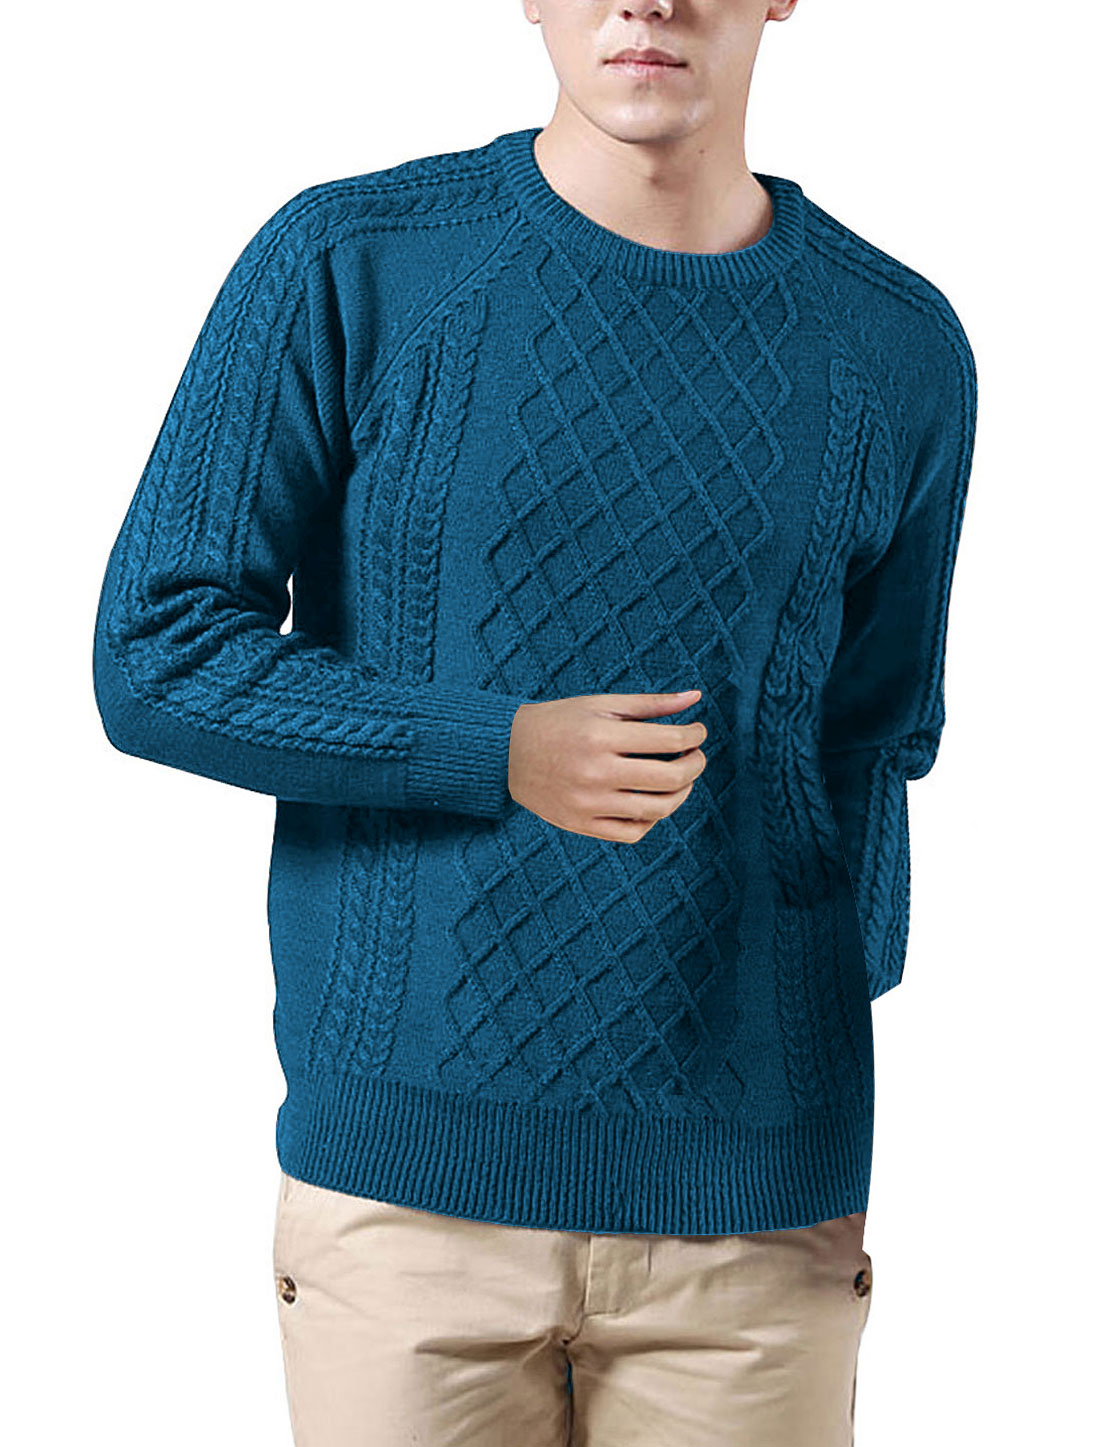 Man Round Neck Long Sleeve Textured Pattern Turquoise Color Sweater M